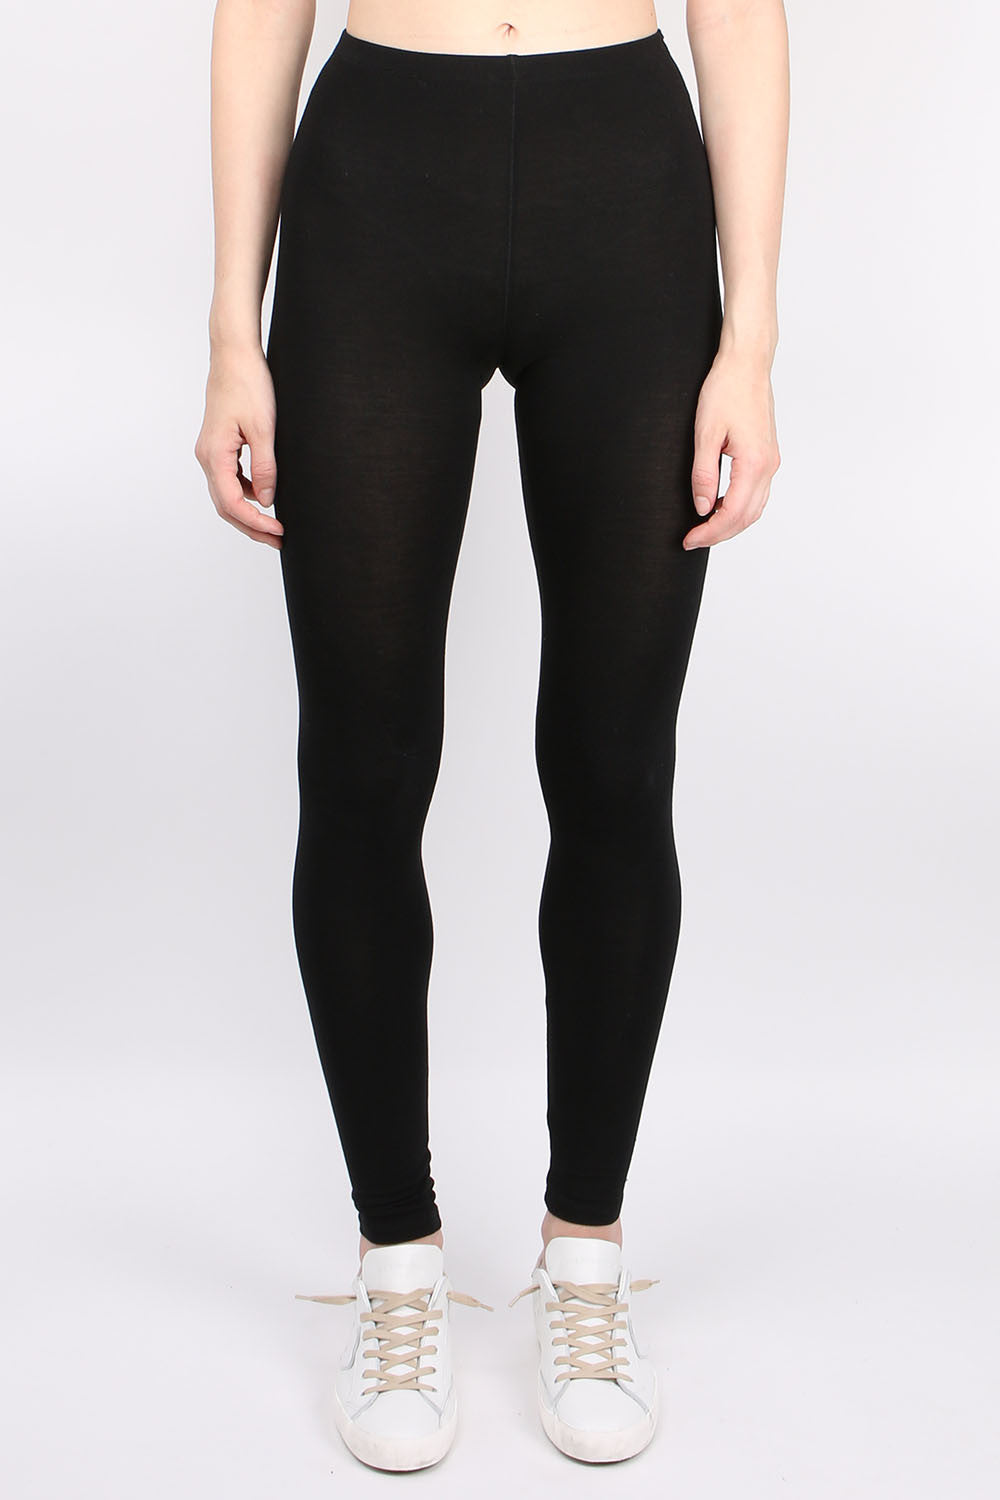 Majestic Filatures Long Legging